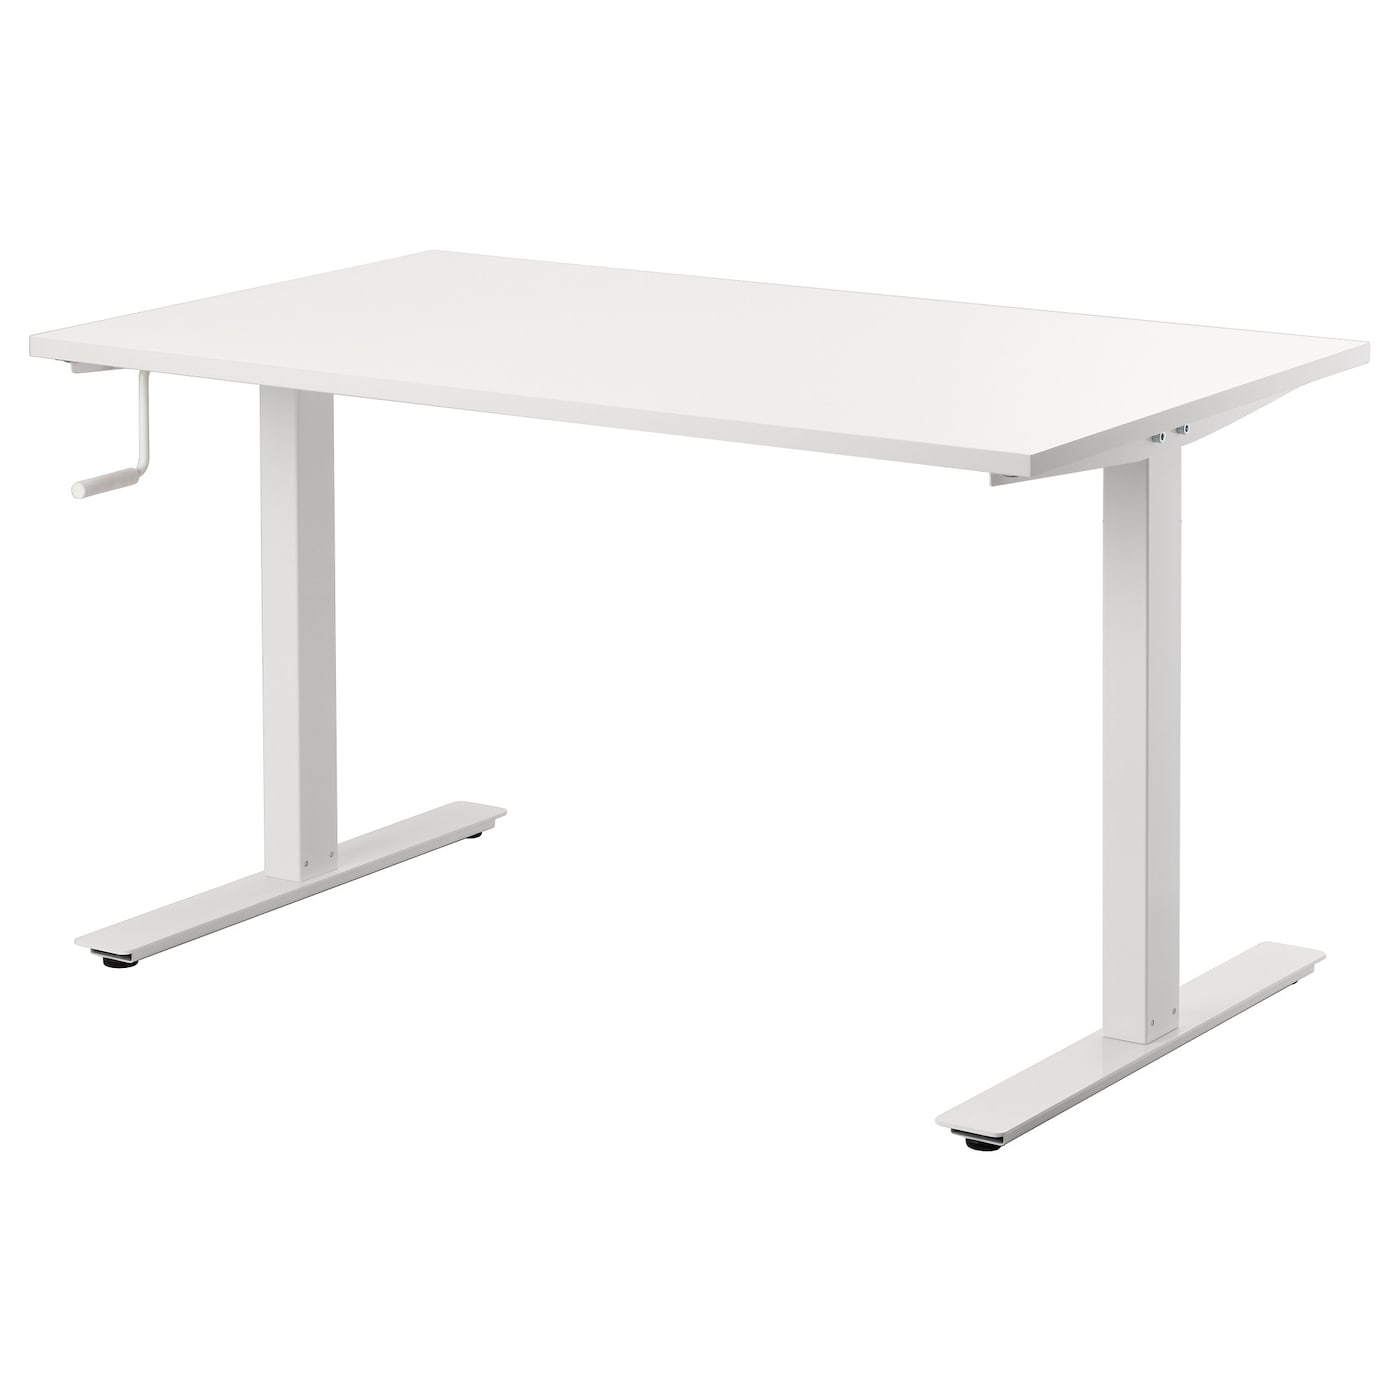 skarsta desk sit stand white 120 x 70 cm ikea. Black Bedroom Furniture Sets. Home Design Ideas